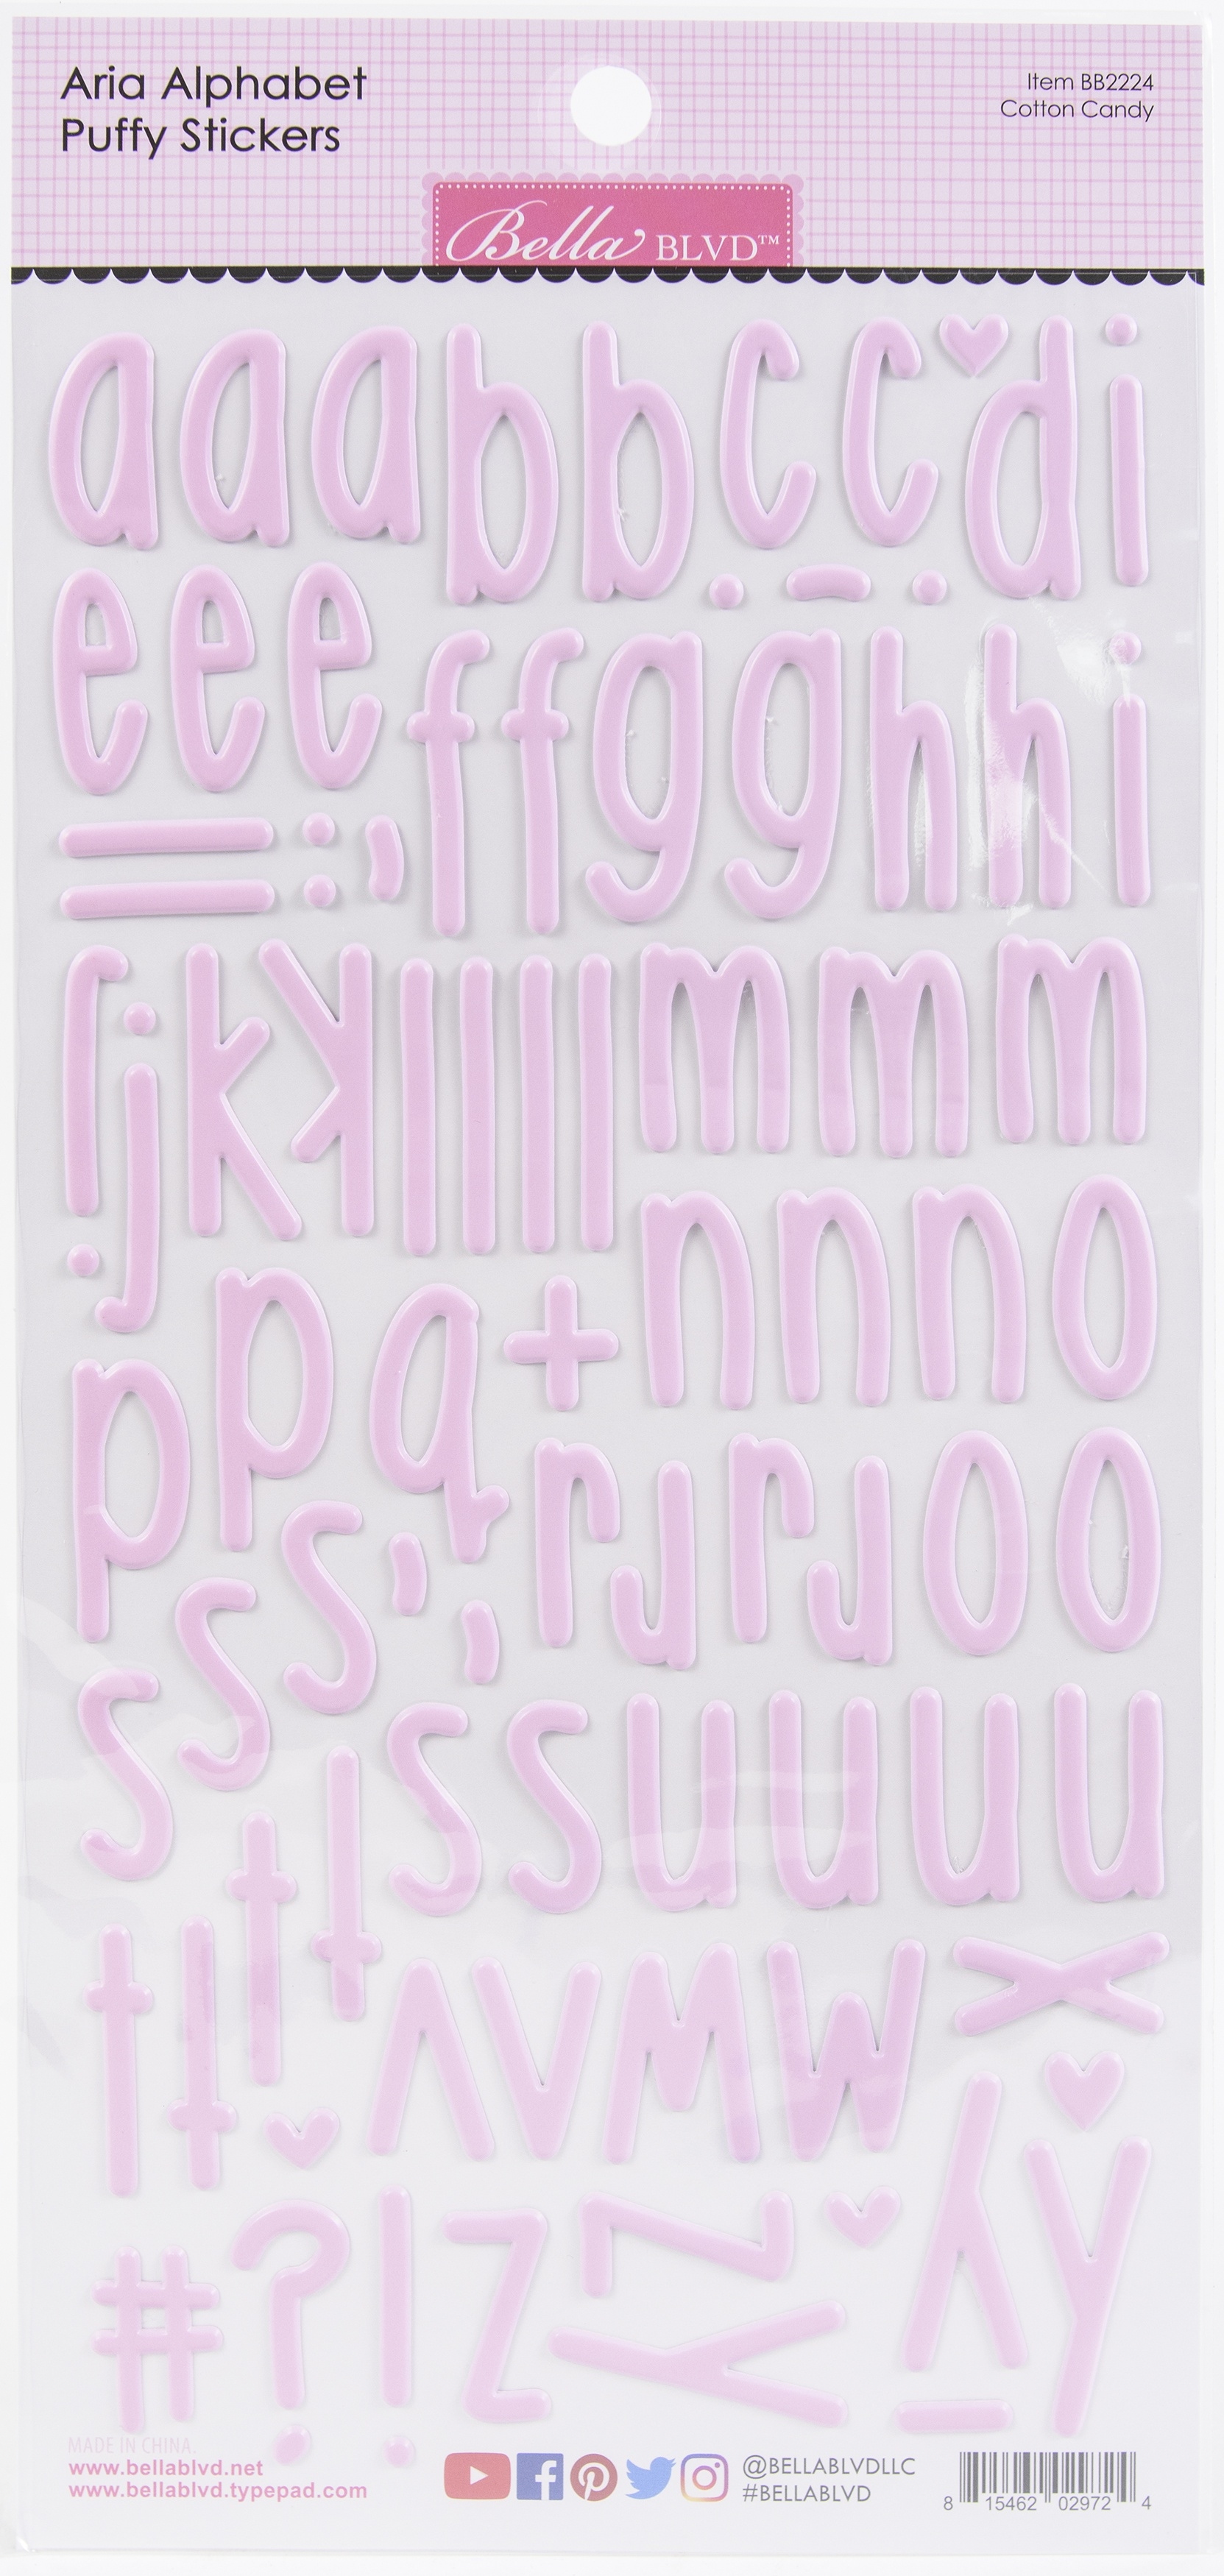 Aria Alpha Puffy Stickers-Cotton Candy